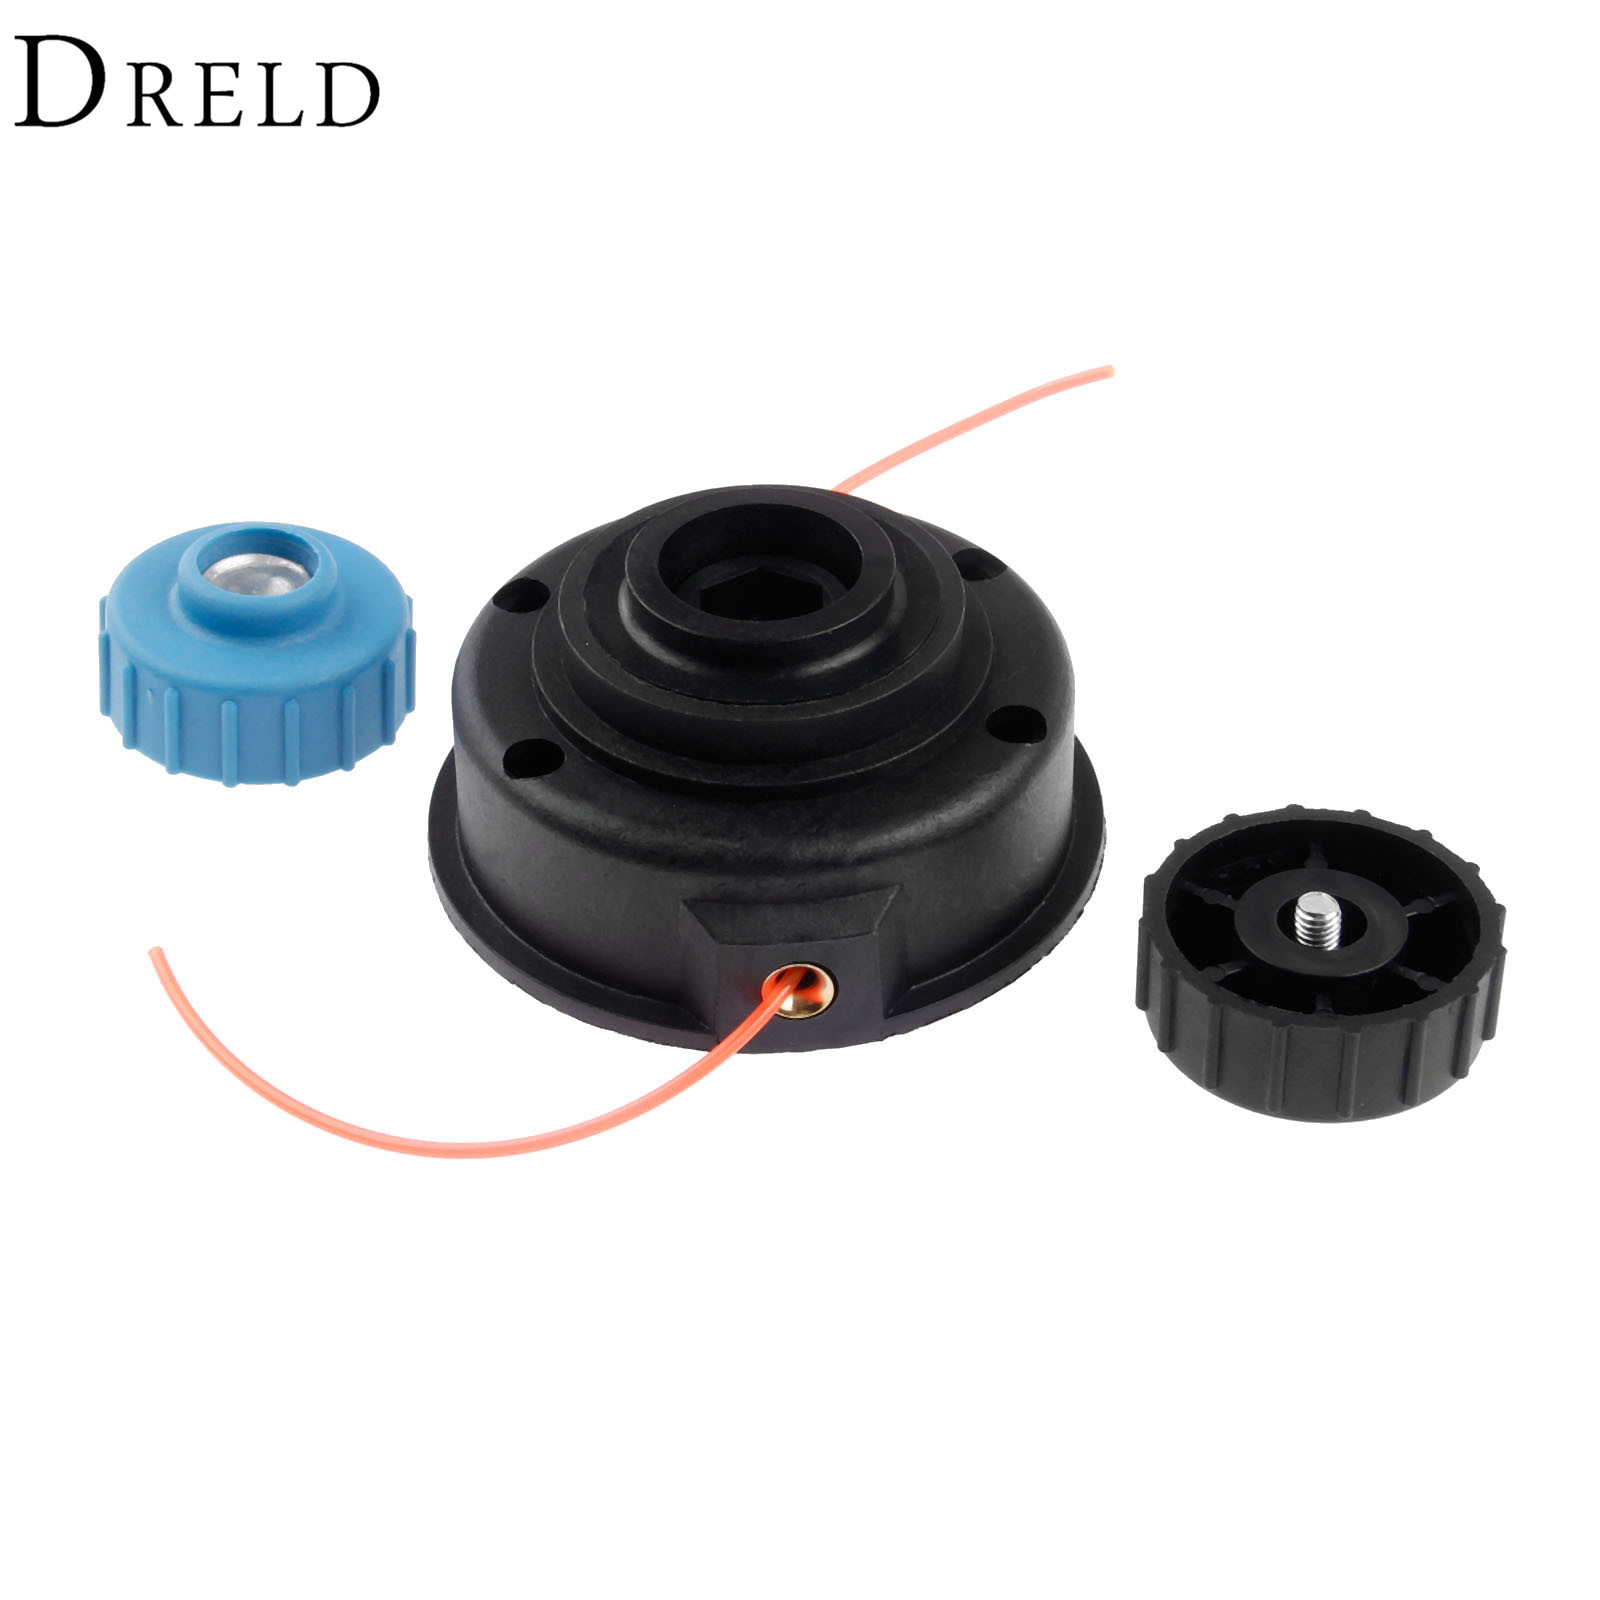 DRELD Black Plastic String Trimmer Bump Head Line Brush Cutter Head Lawn Mower Accessories for Strimmer Garden Tools Accessories lamagio 117 la